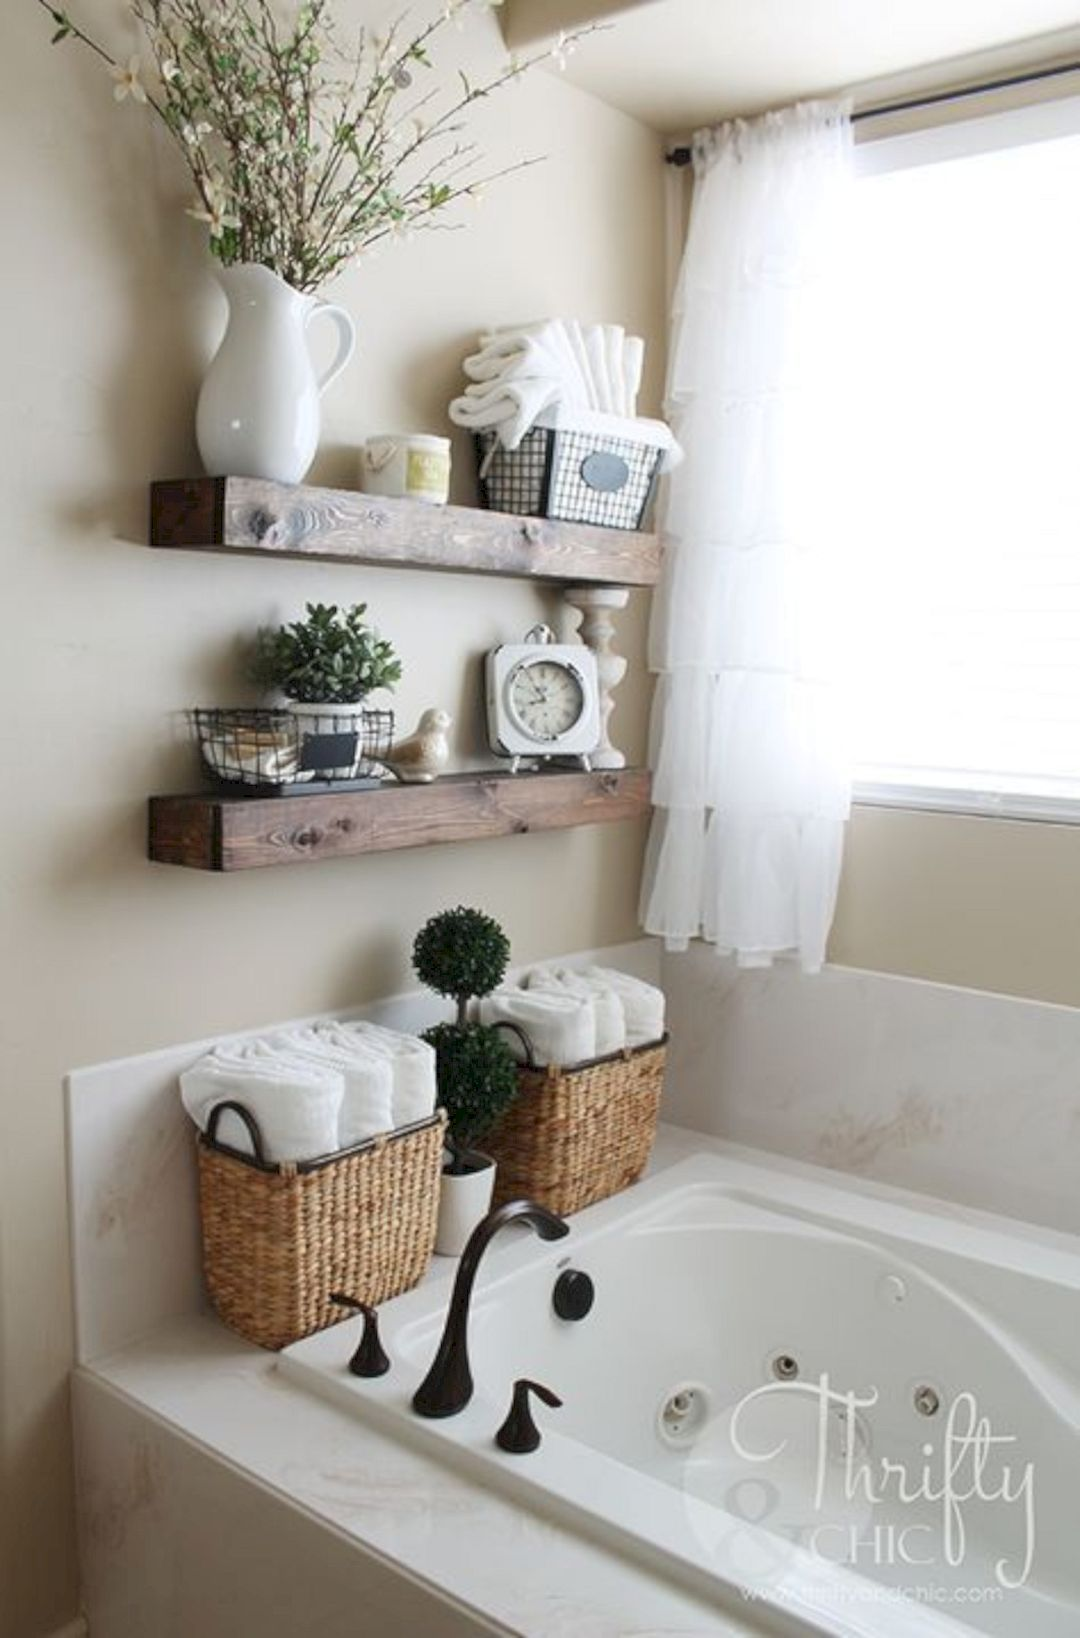 15 Bathroom Decorating Ideas You Can Have At Home Decorating